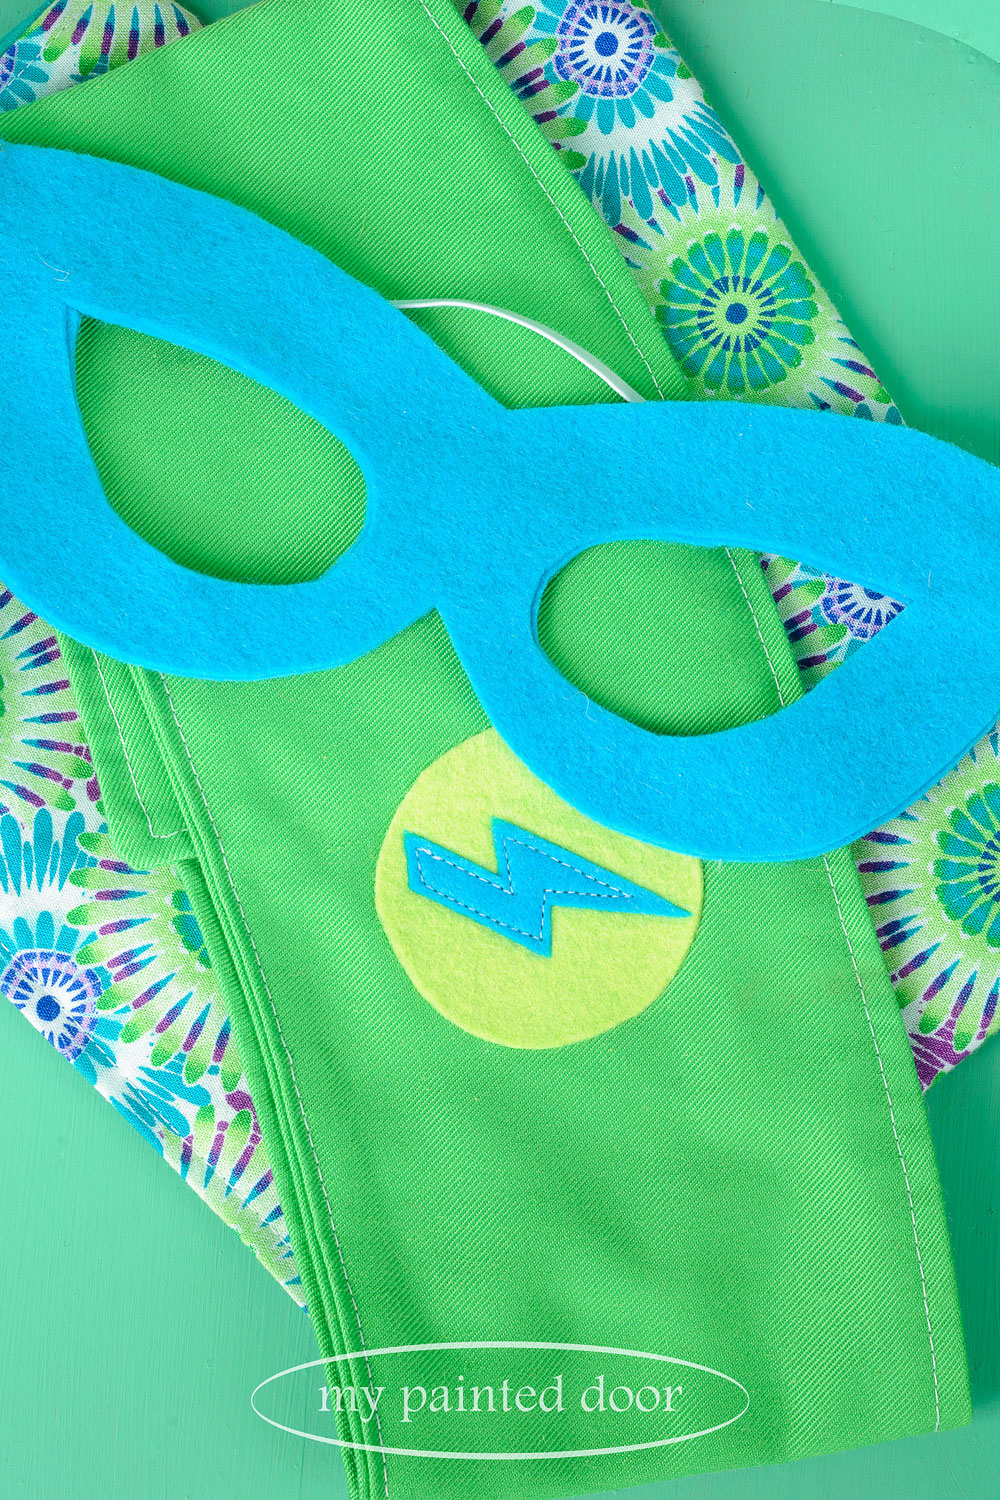 Child size superhero cape, belt and mask by  Sew Whimsical by Katie  - via My Painted Door (.com)